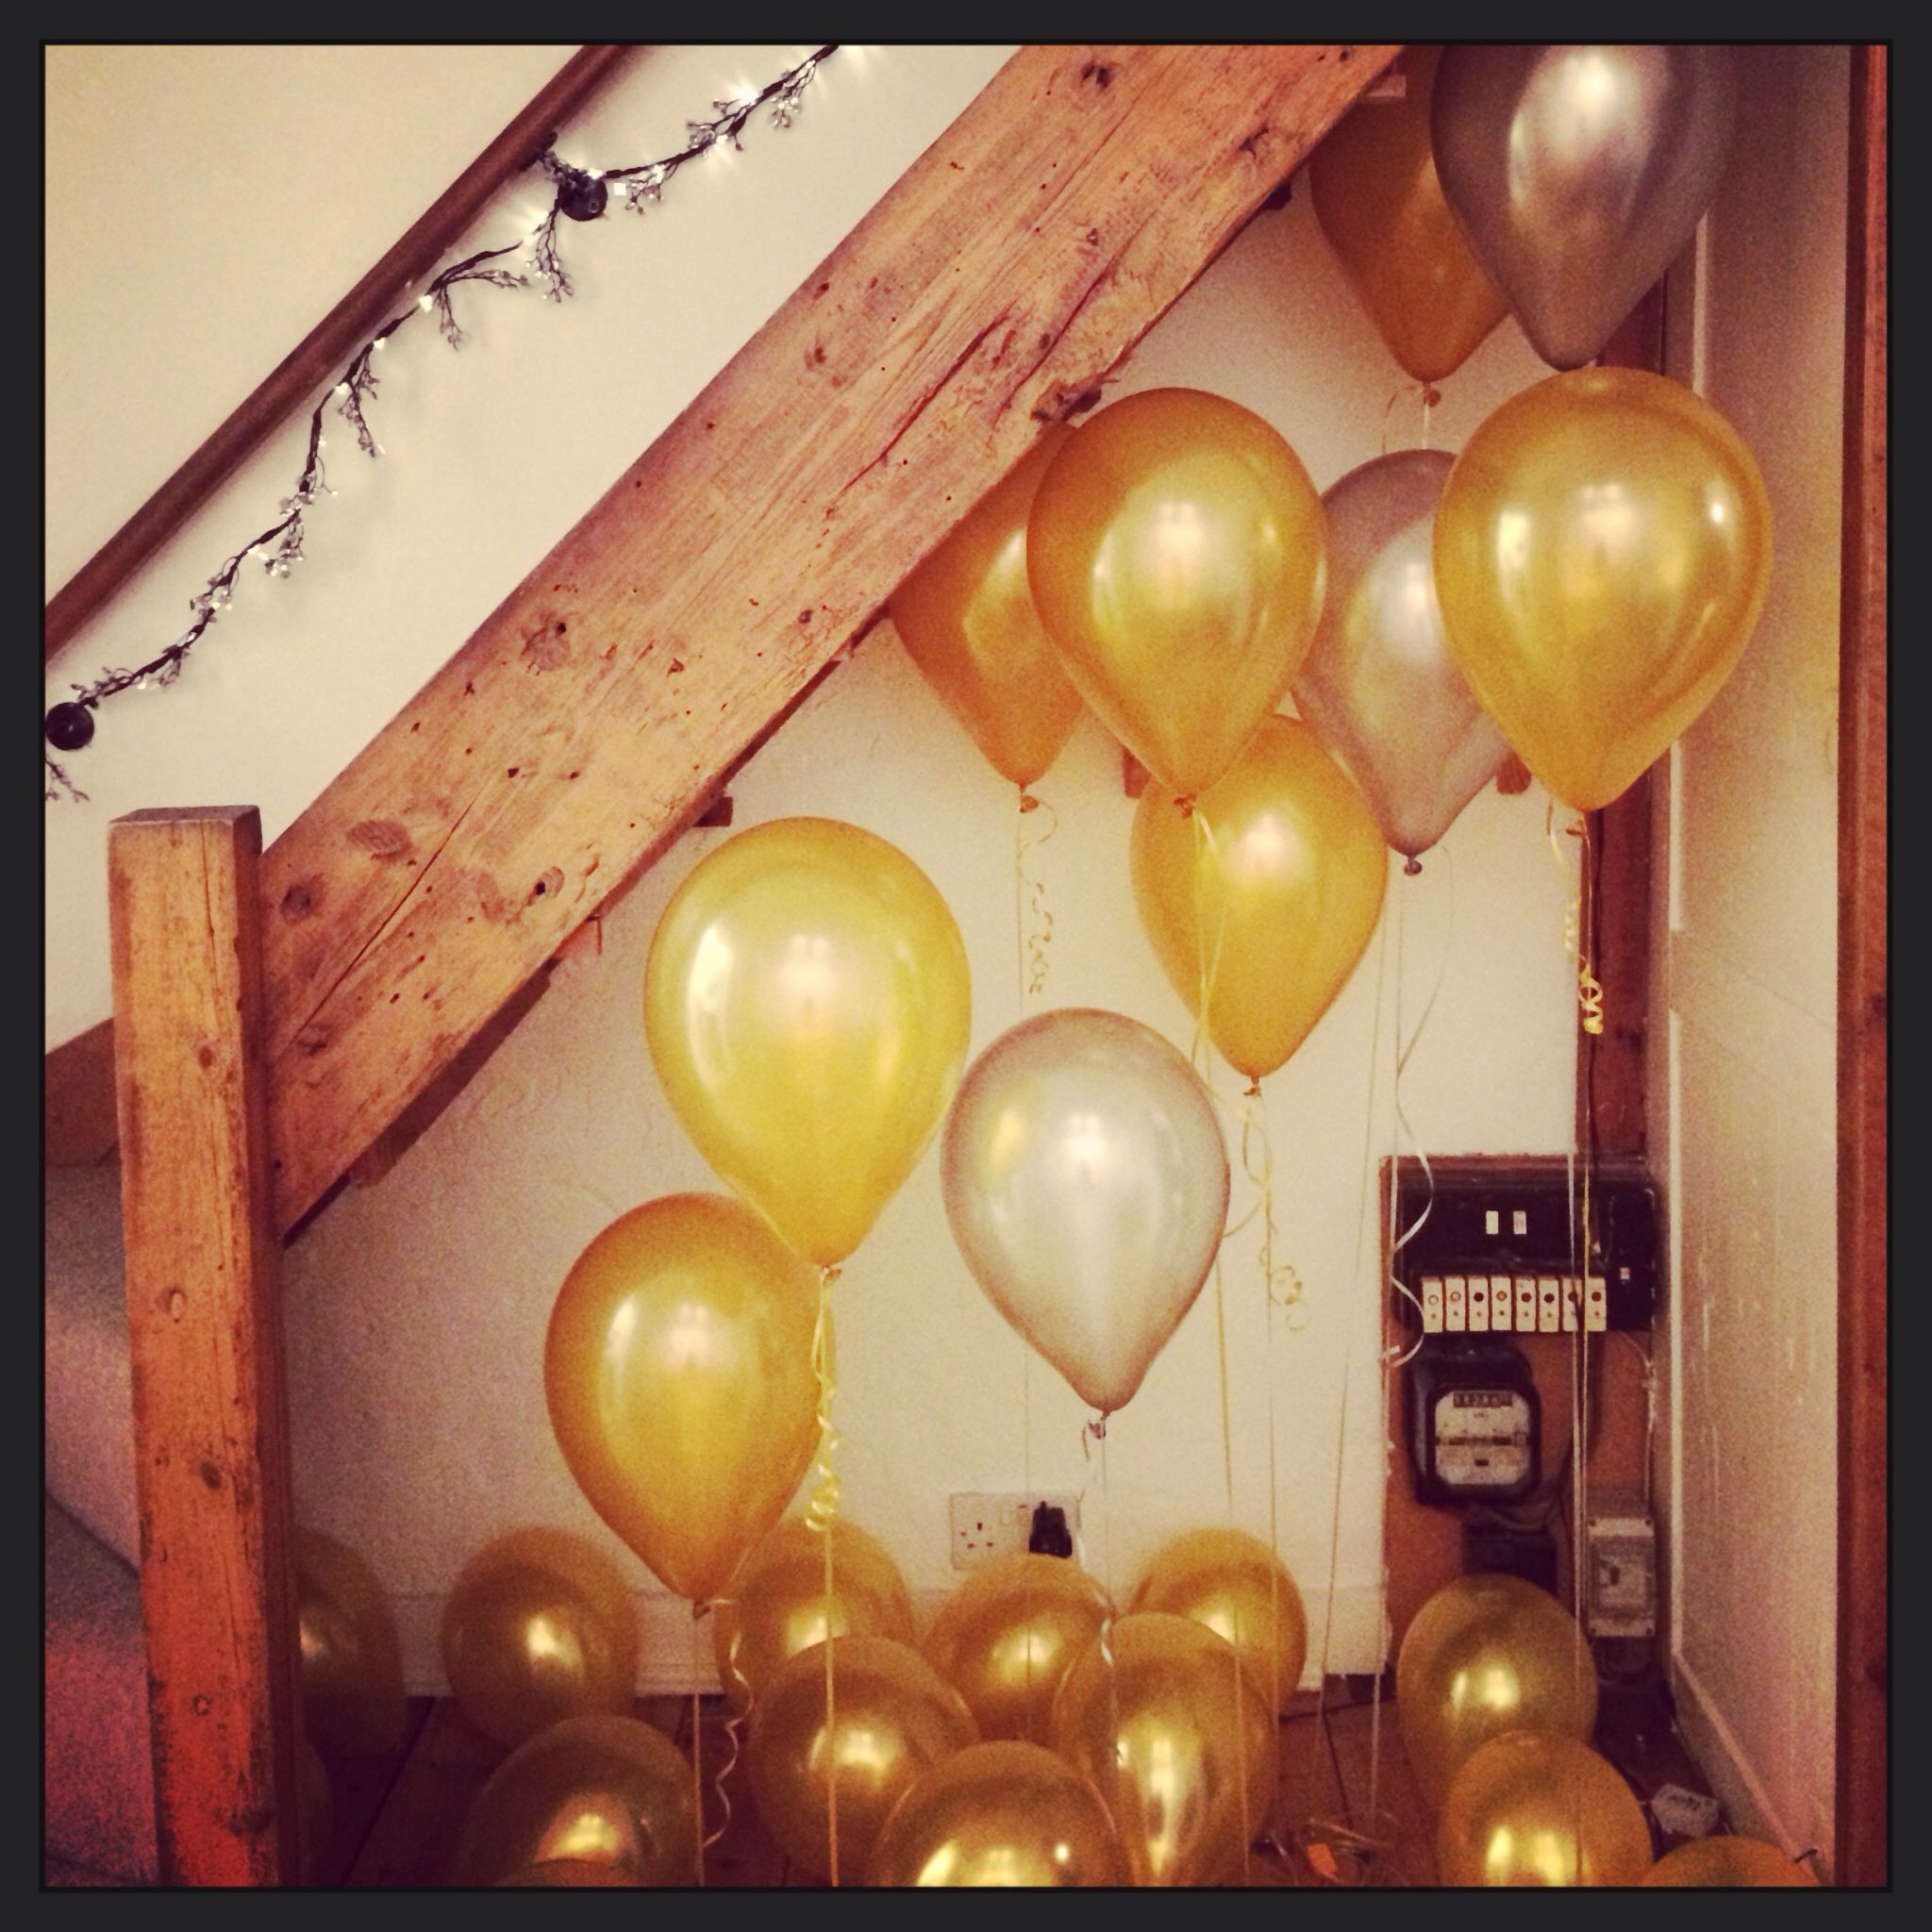 new year's eve, house party decoration ideas with balloons | party